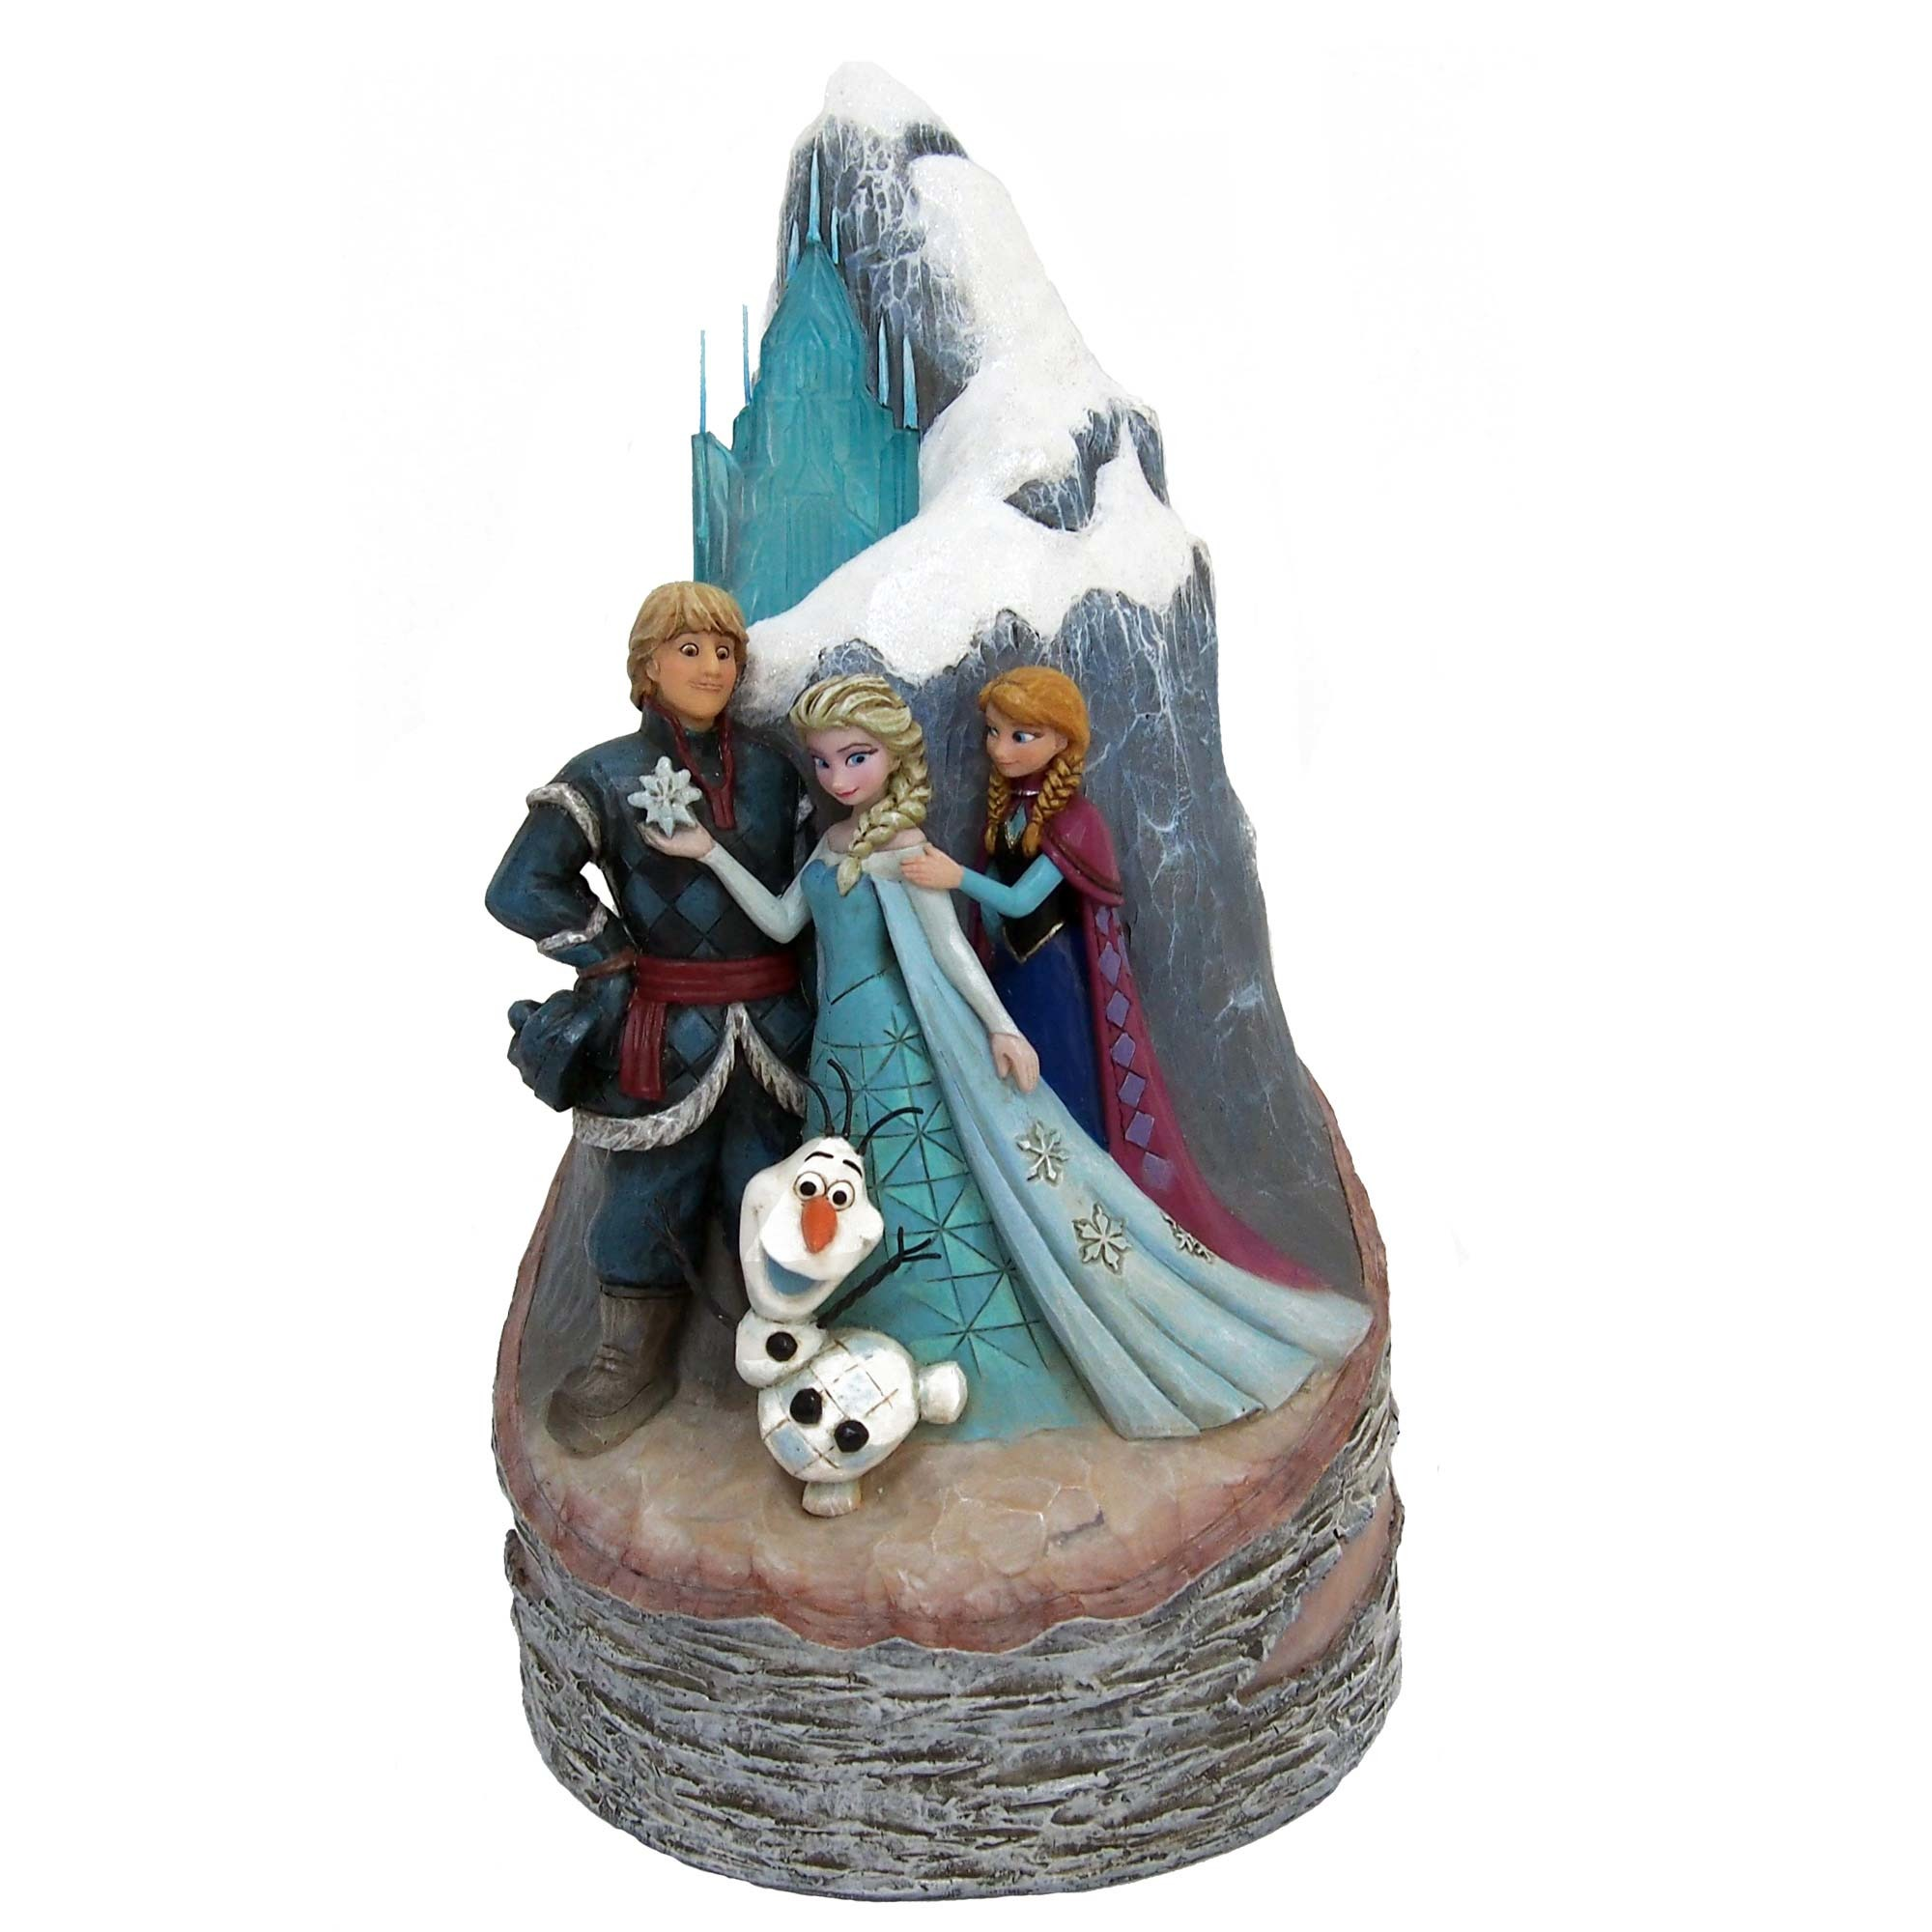 Frozen Carved By Heart - Worth Melting For